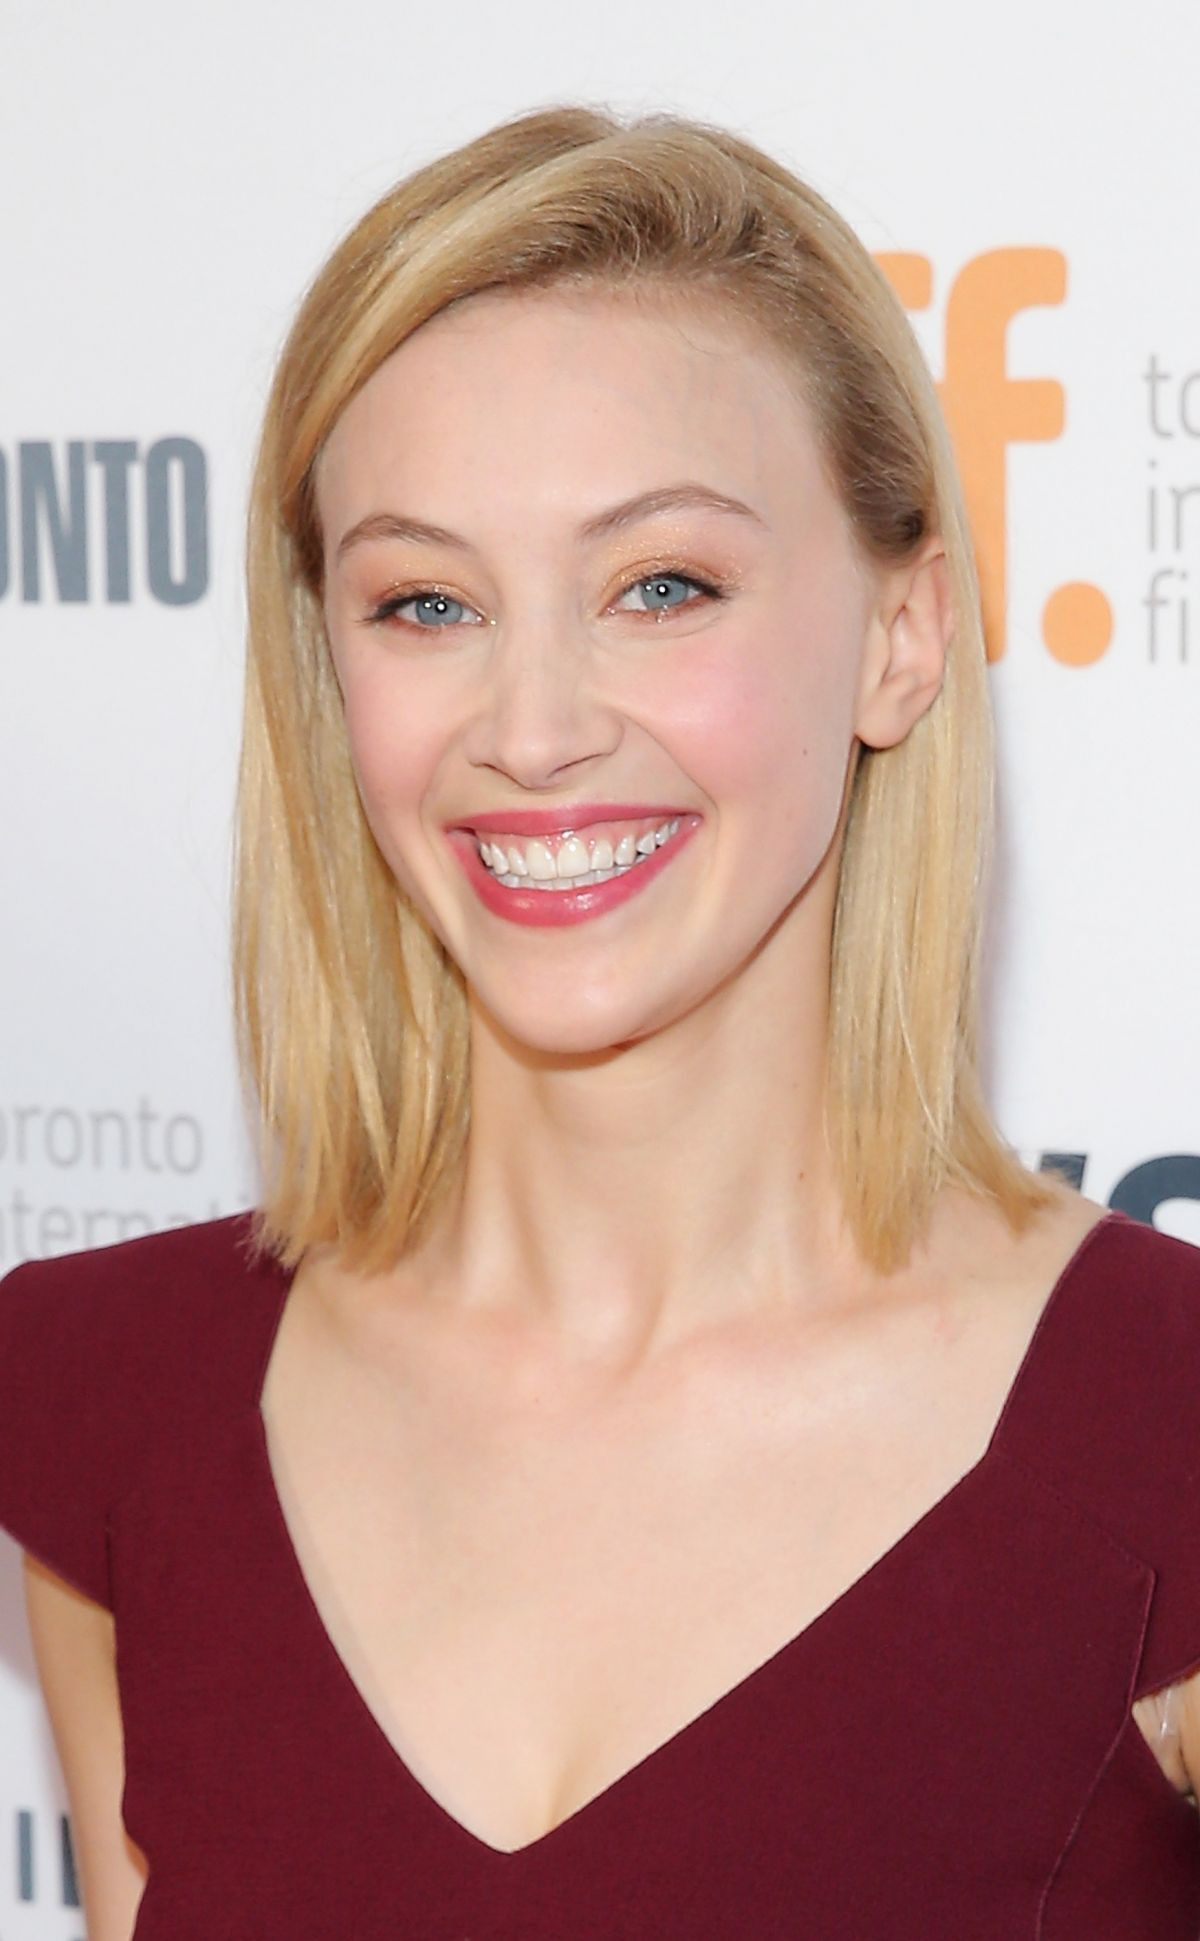 SARAH GADON at Toronto International Film Festival Gala